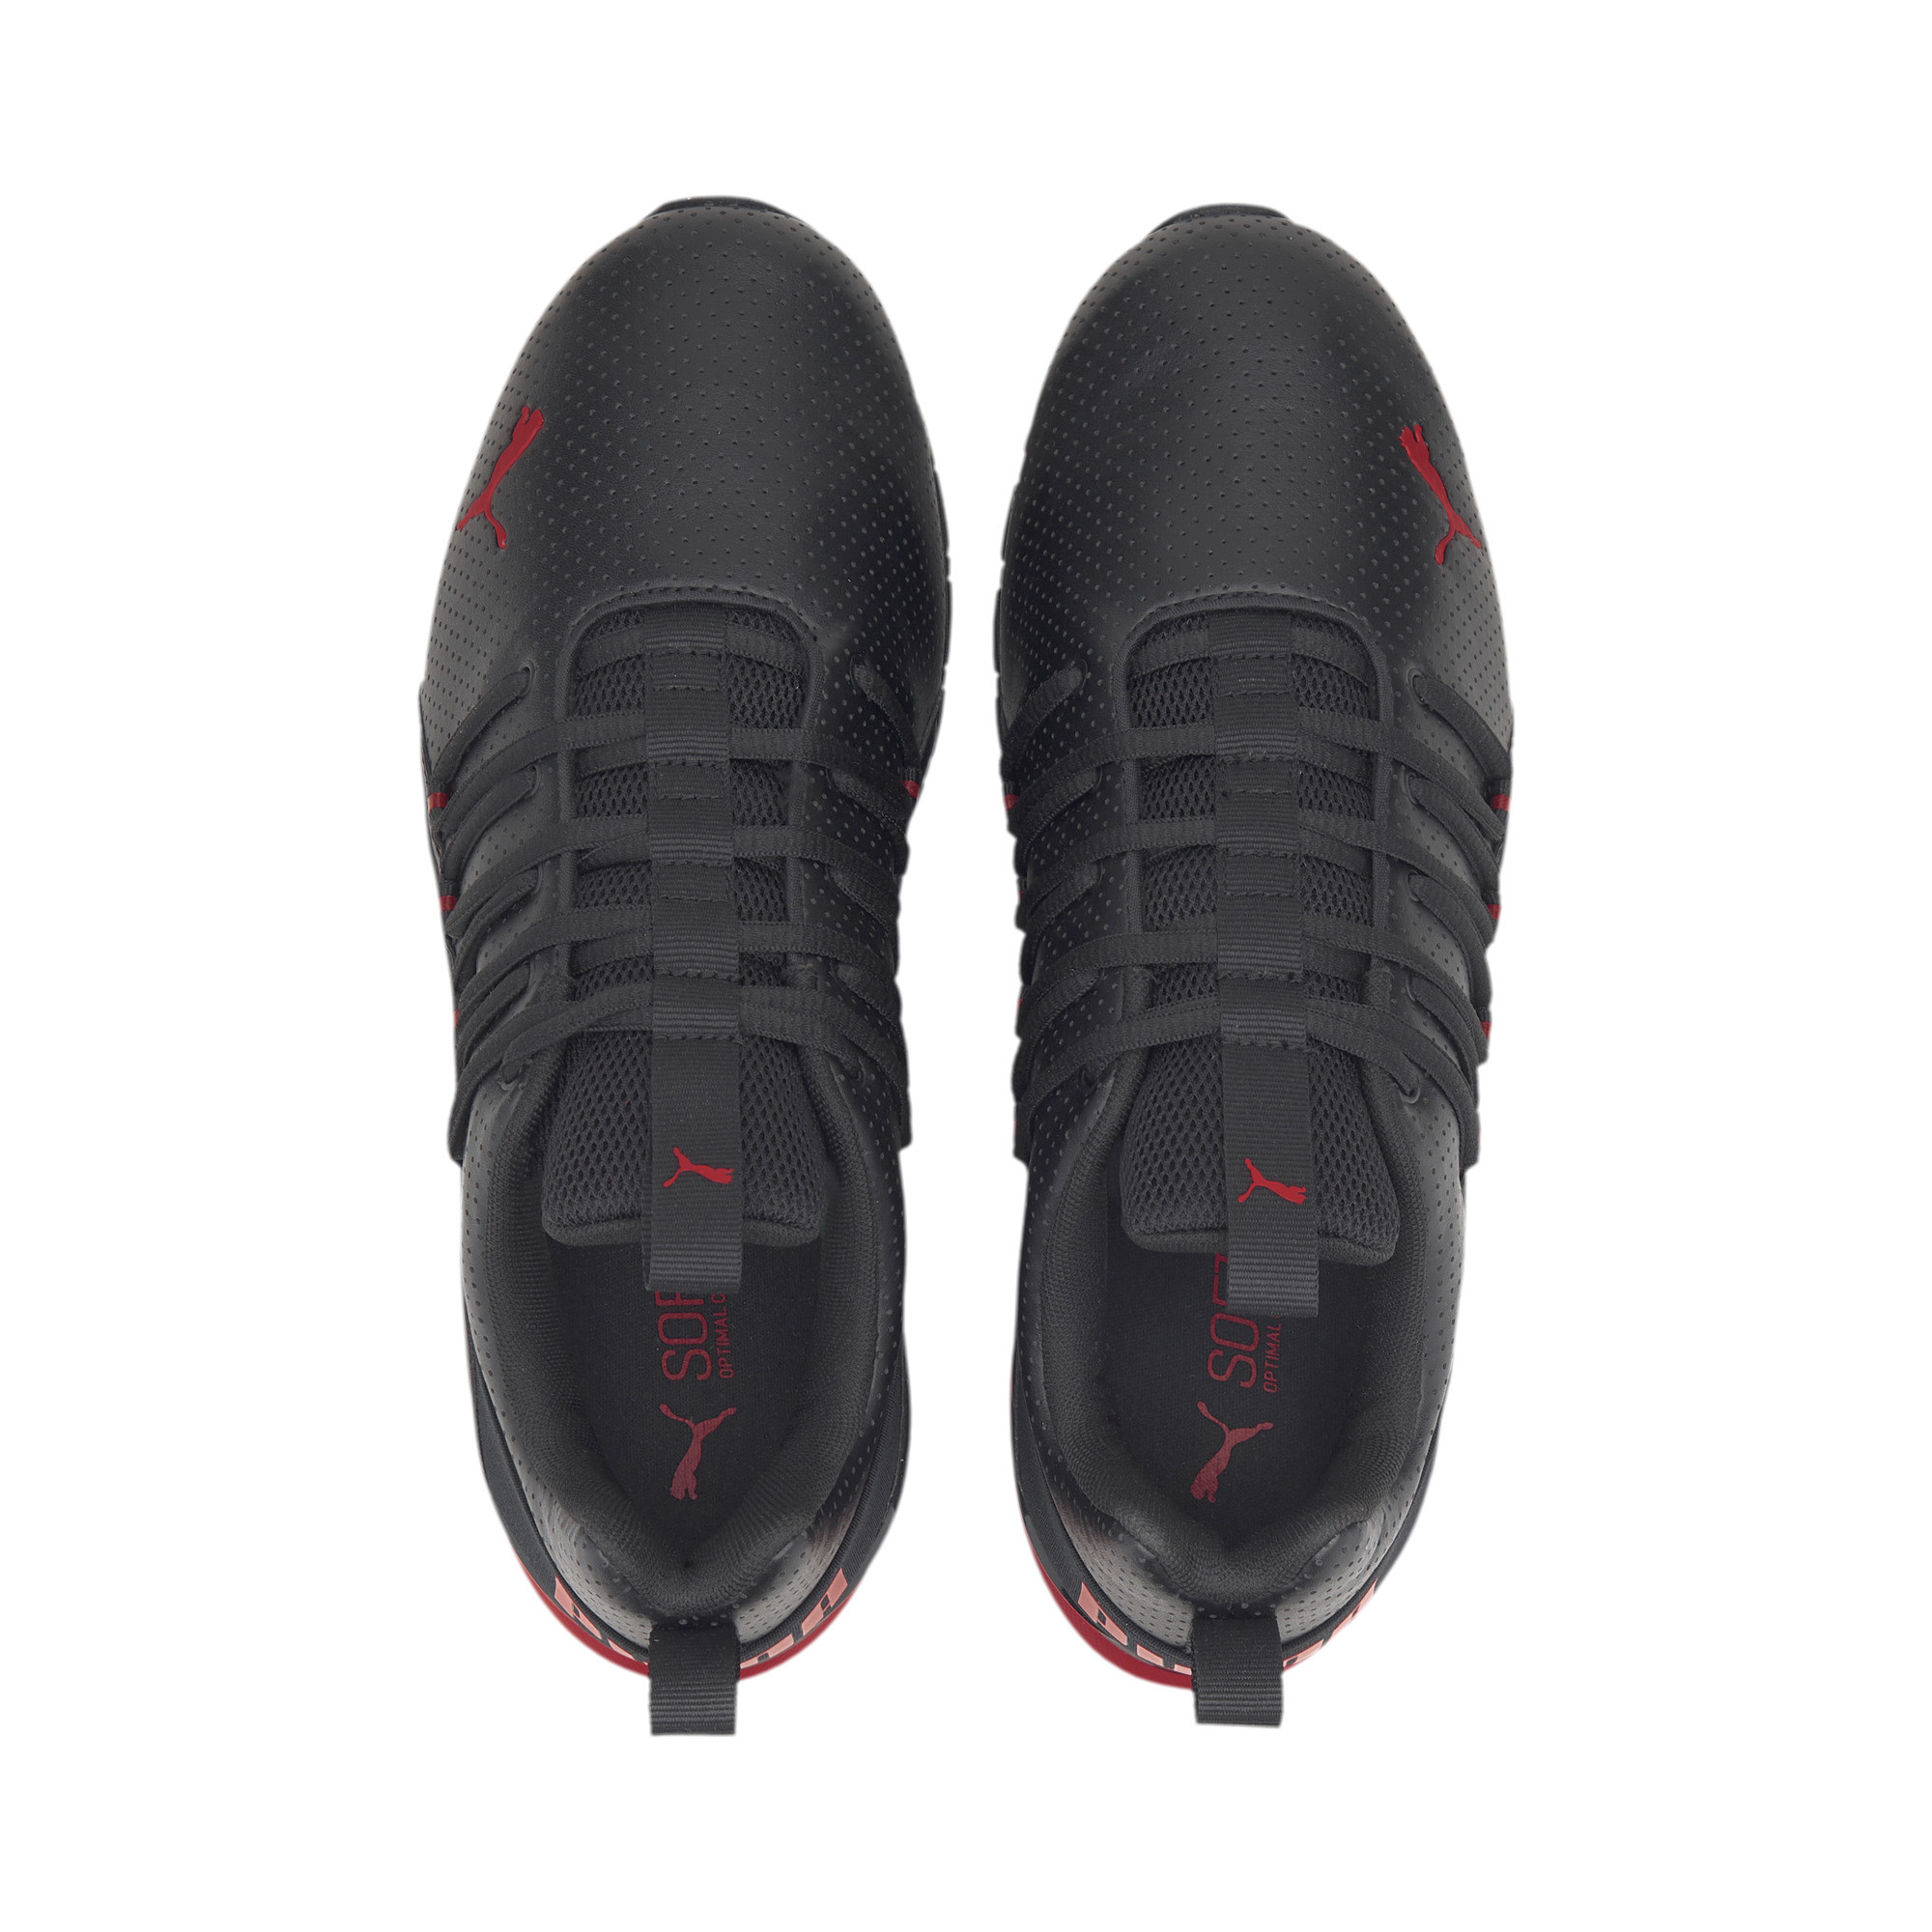 PUMA-Men-039-s-Axelion-Perf-Training-Shoes thumbnail 13